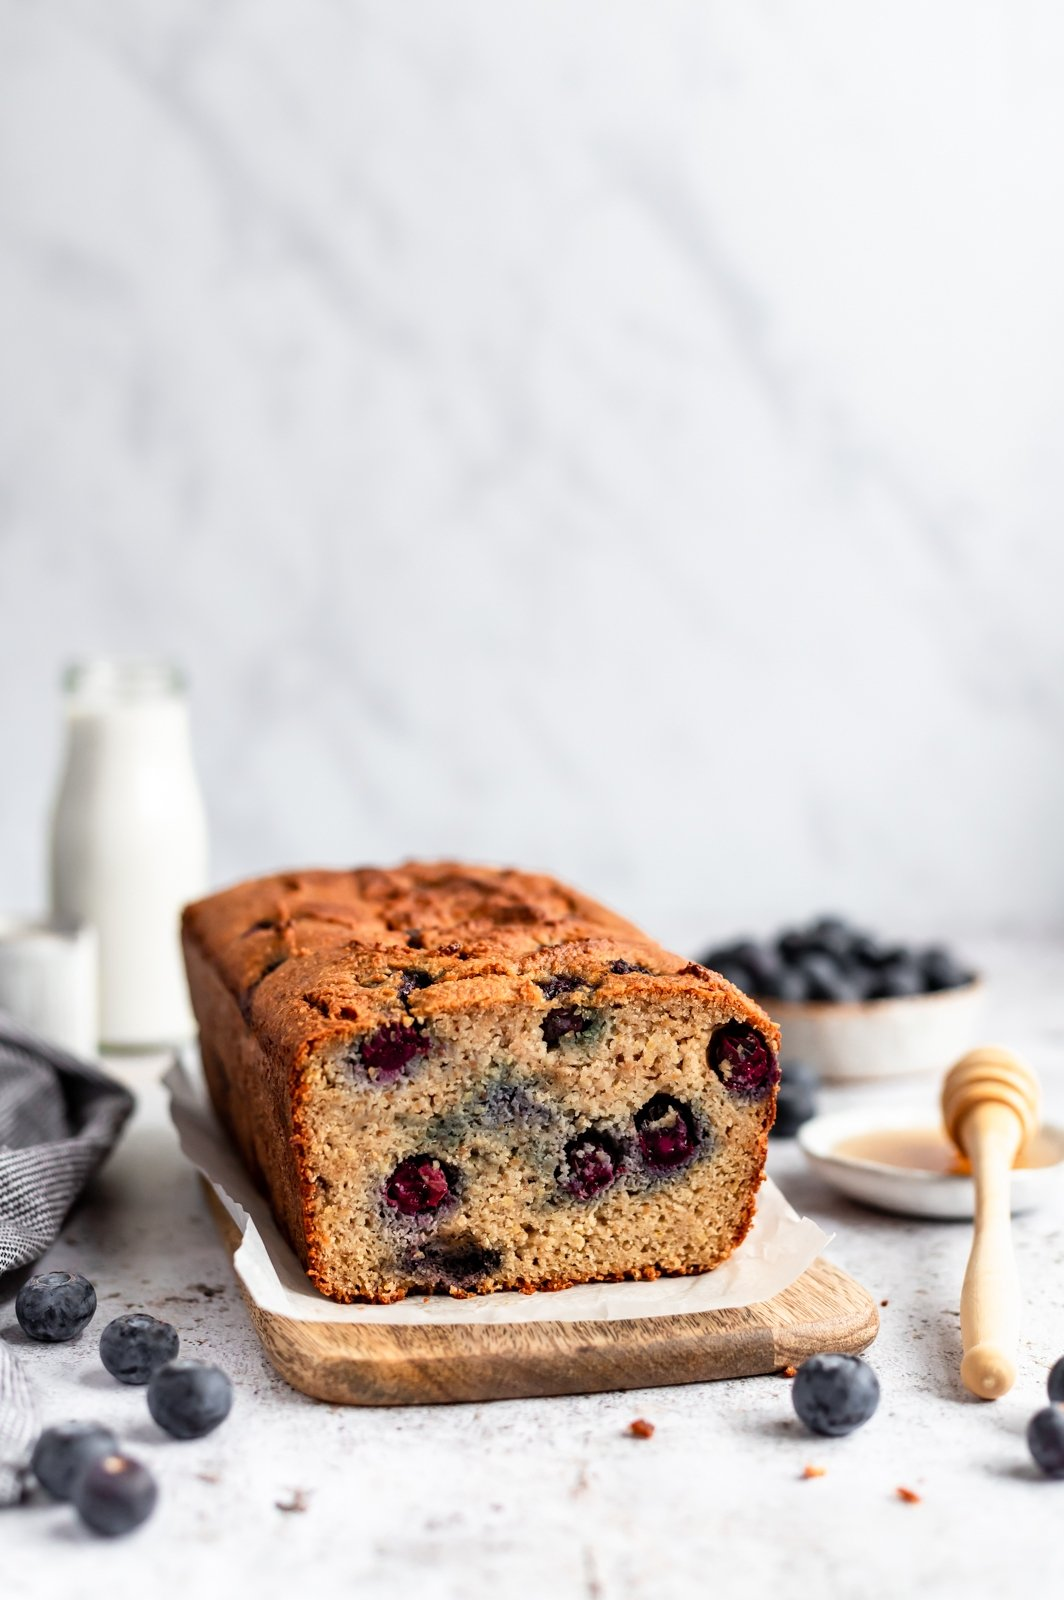 paleo almond flour blueberry bread with a slice cut out